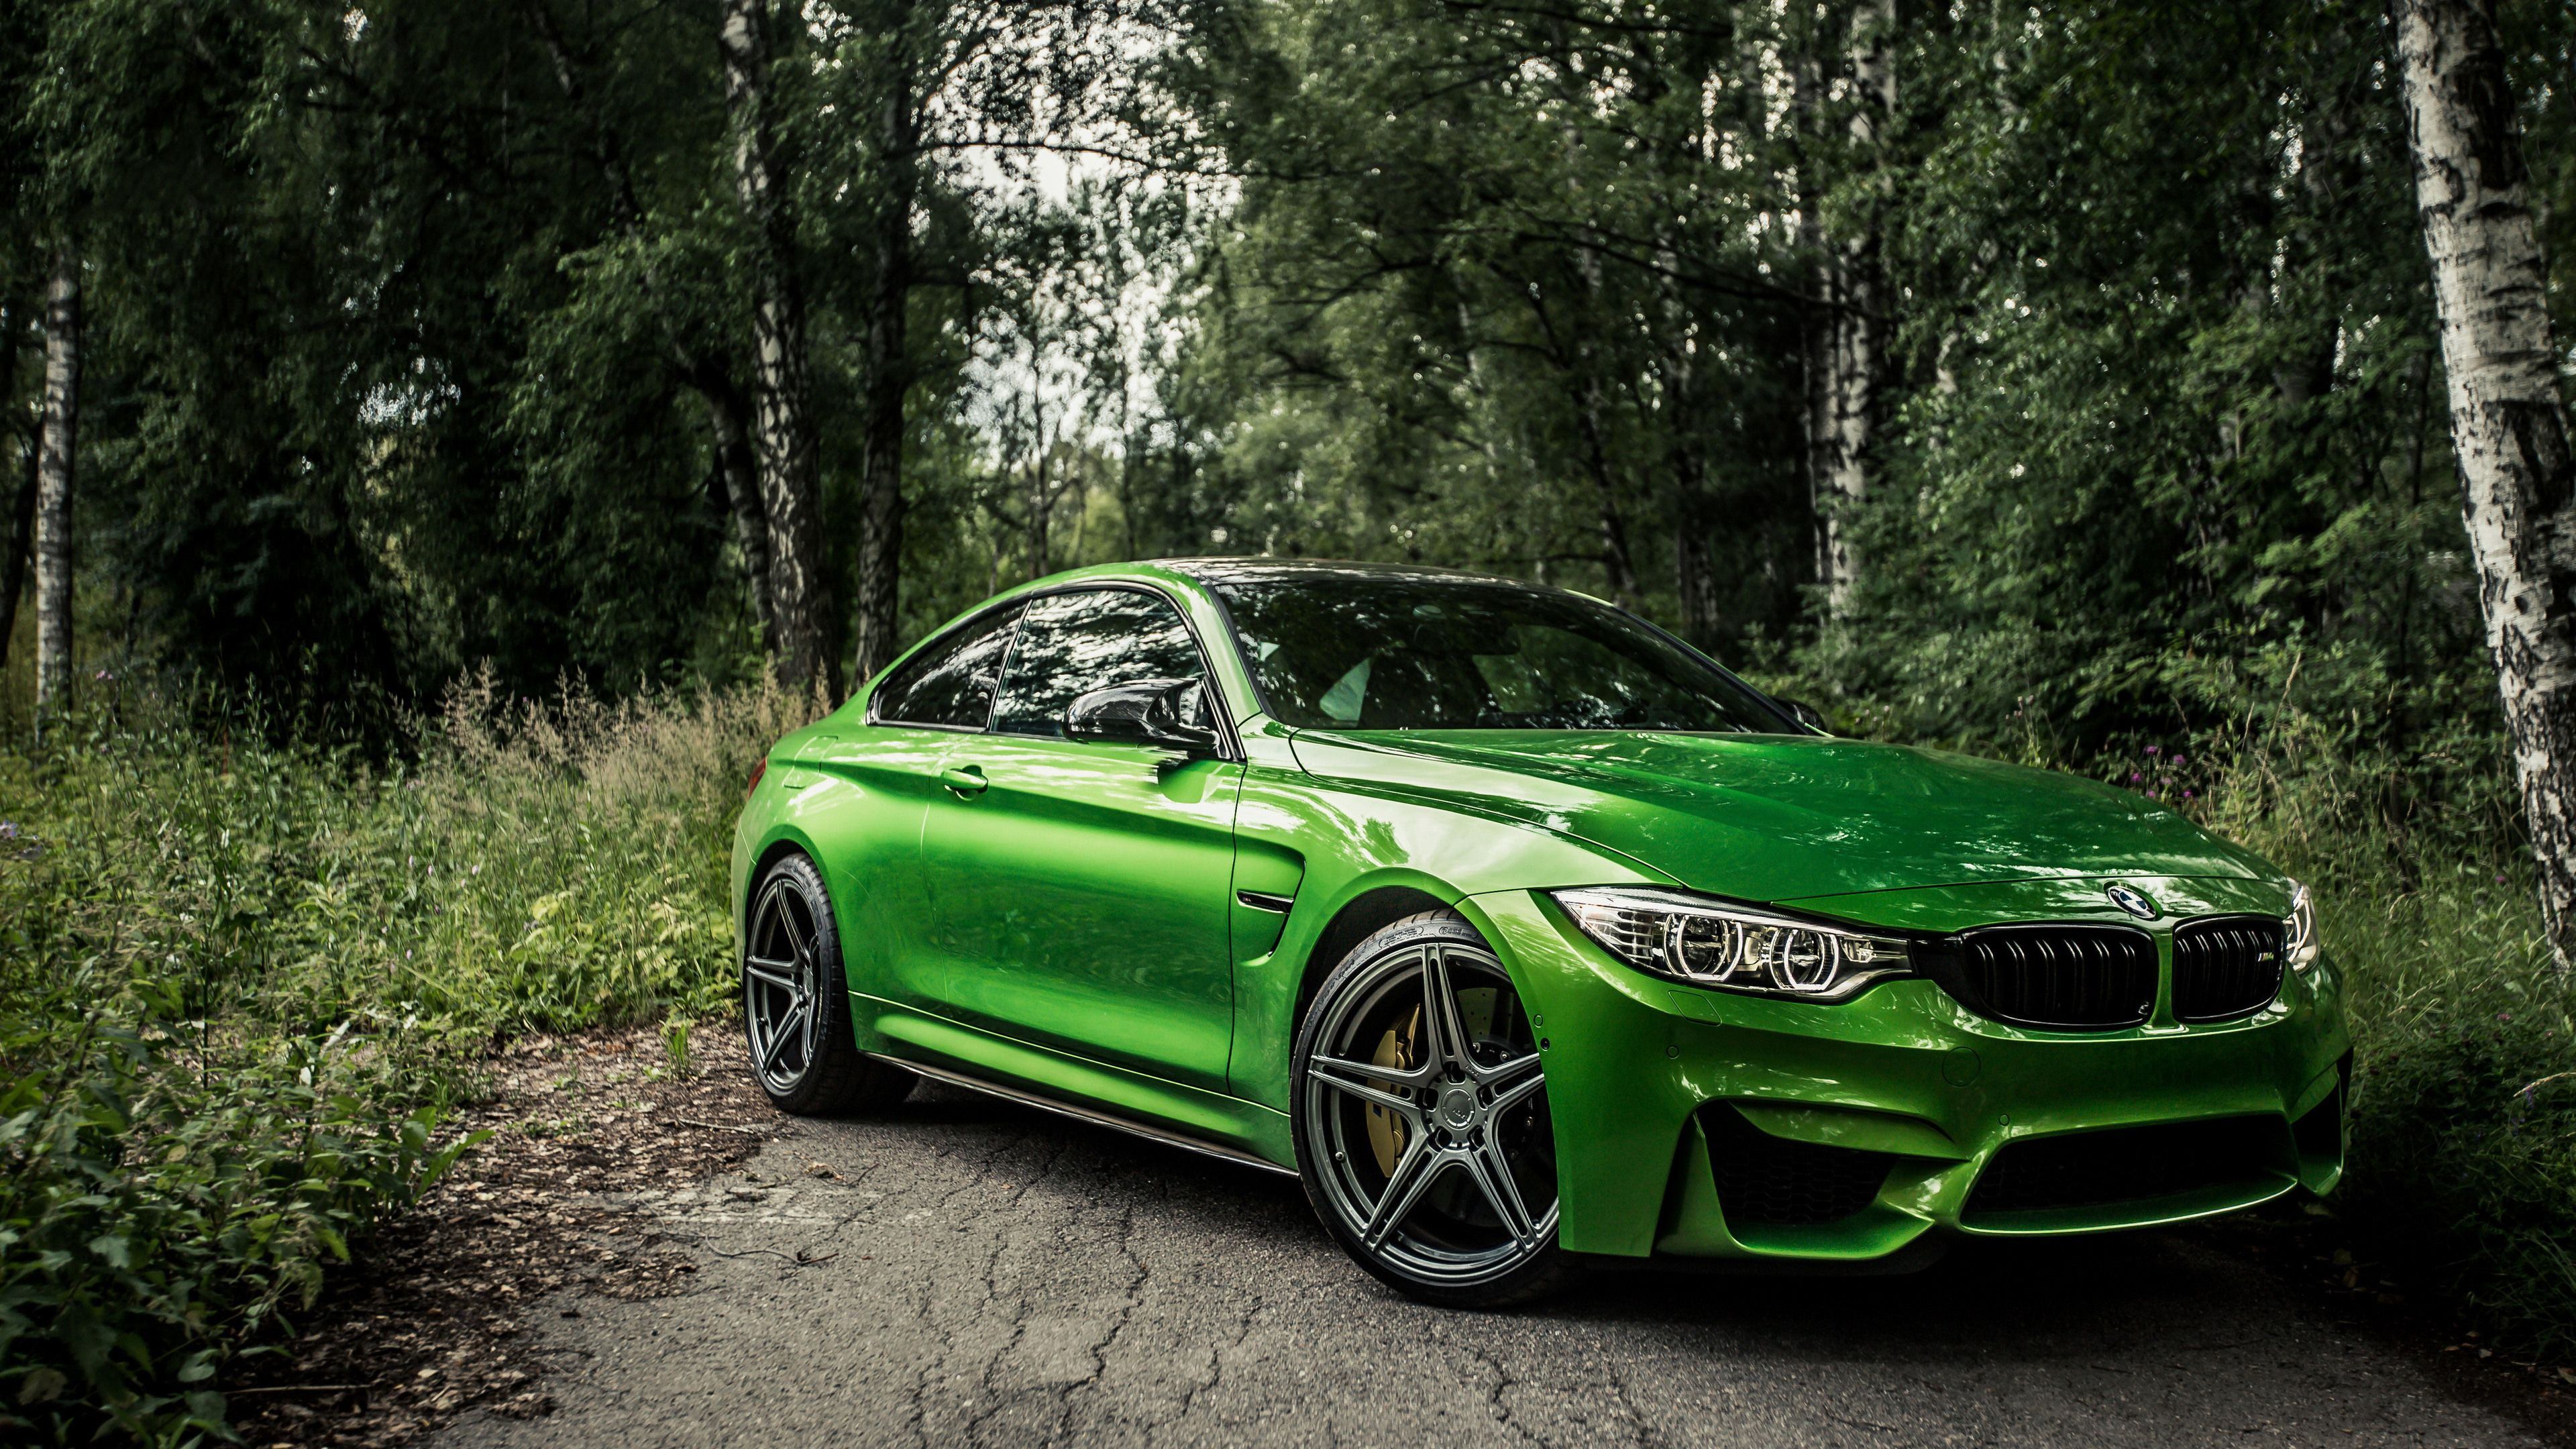 Bmw F82 5k Hd Wallpapers Cars Wallpapers Bmw Wallpapers 5k Wallpapers 4k Wallpapers Bmw M4 Bmw Bmw Wallpapers